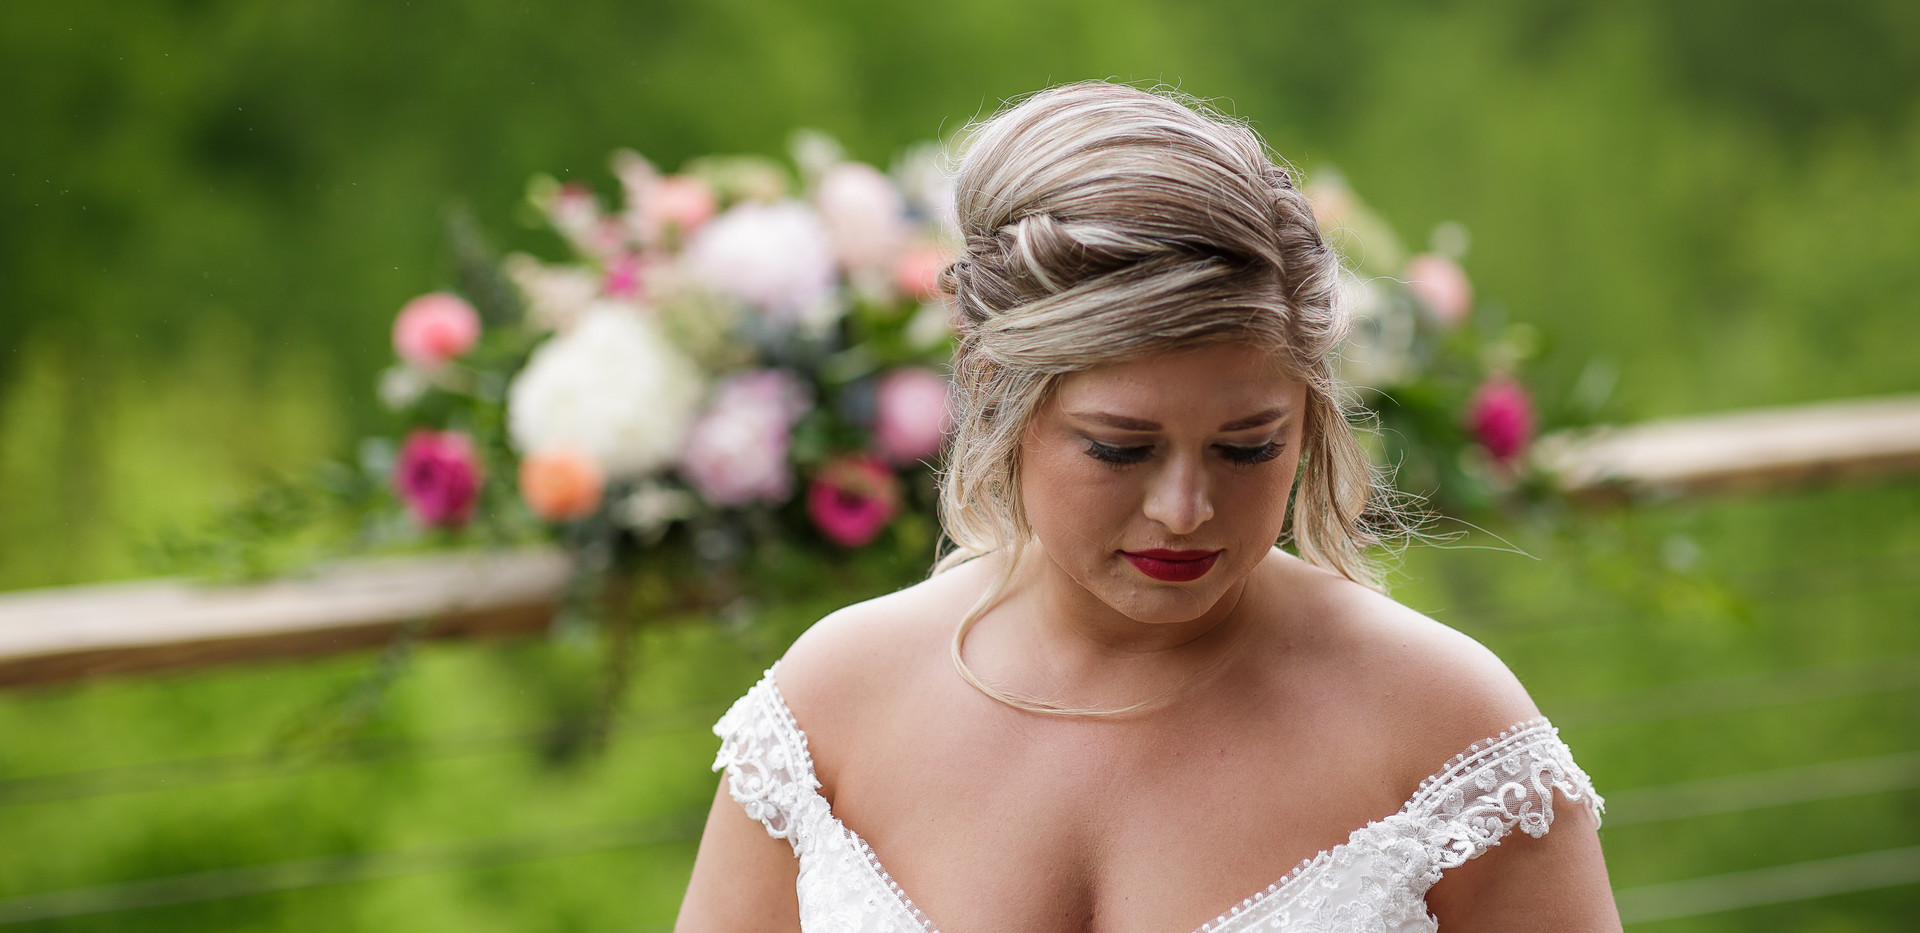 Hair and Make-up packages available